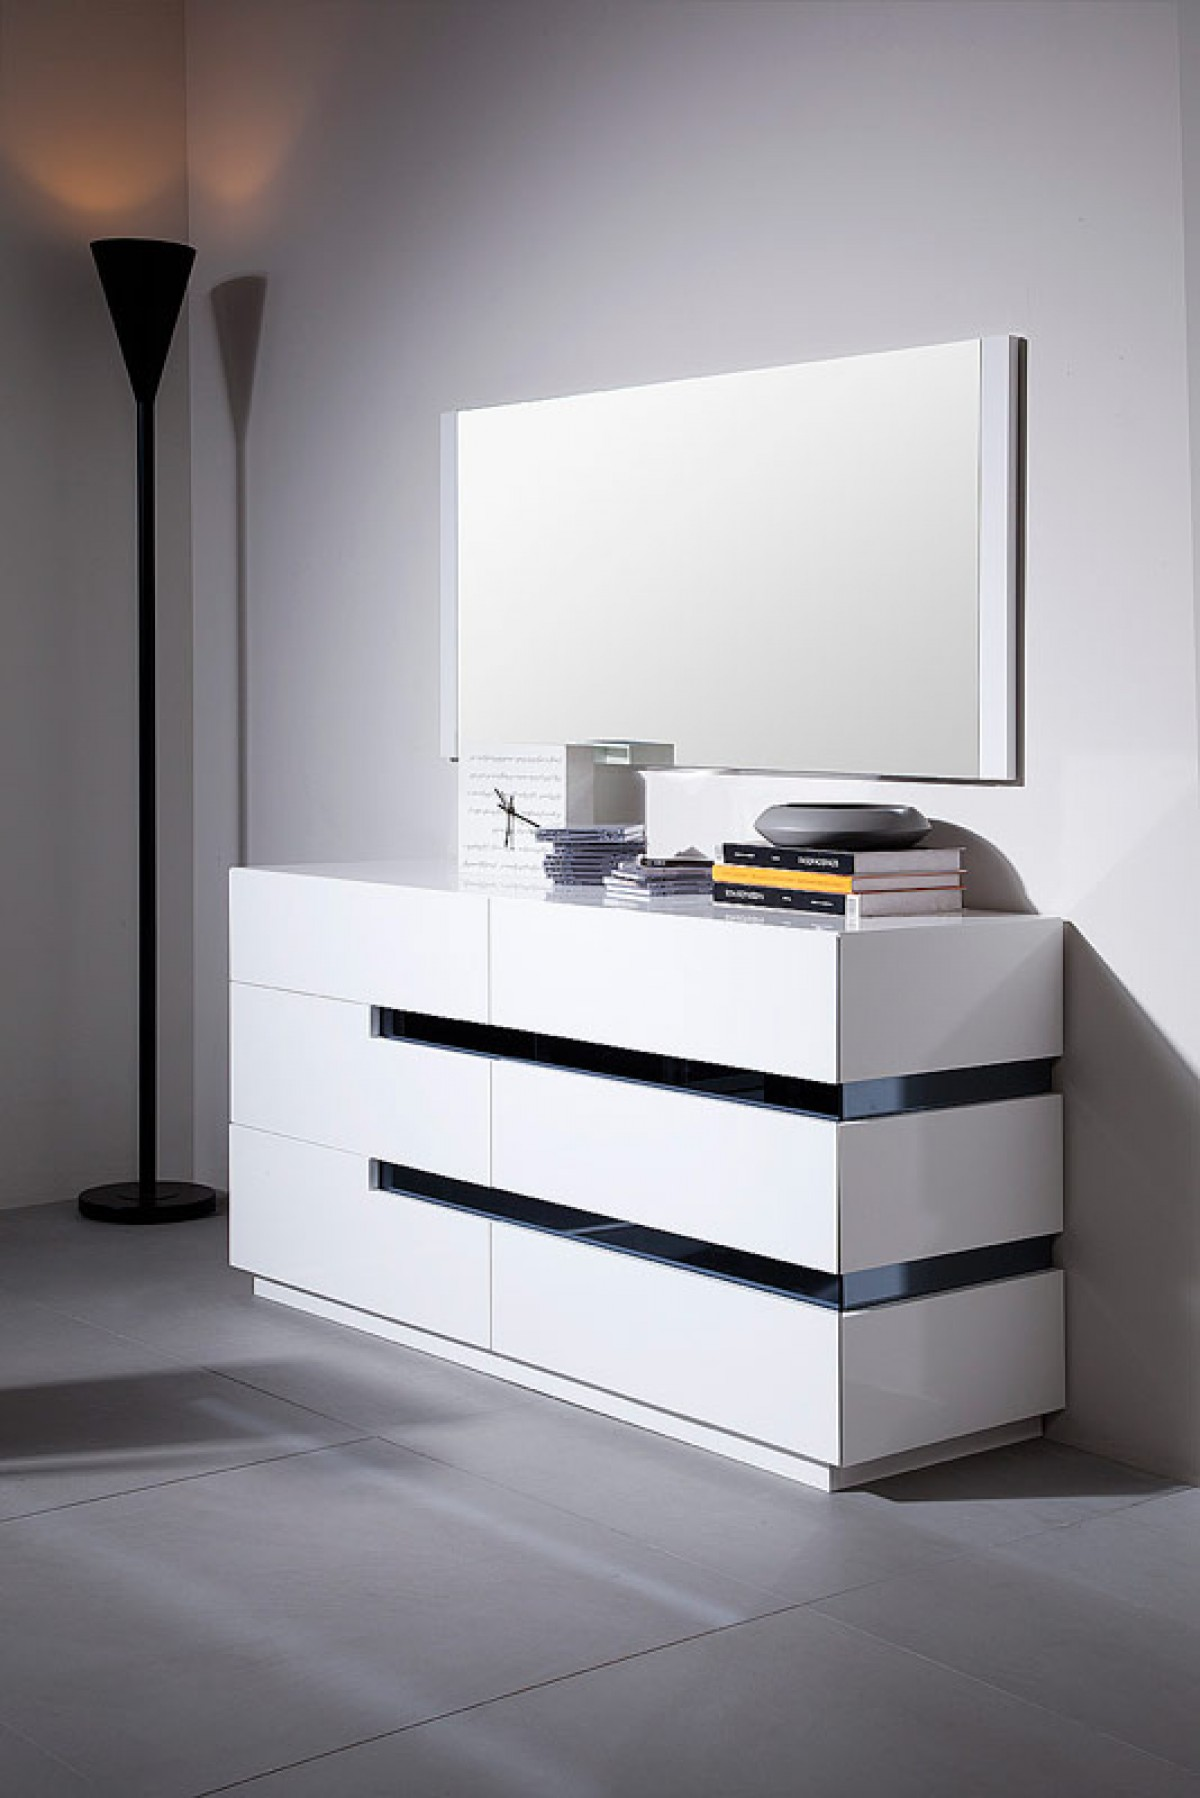 Modrest Polar - Contemporary White Gloss Dresser - Dressers - Bedroom